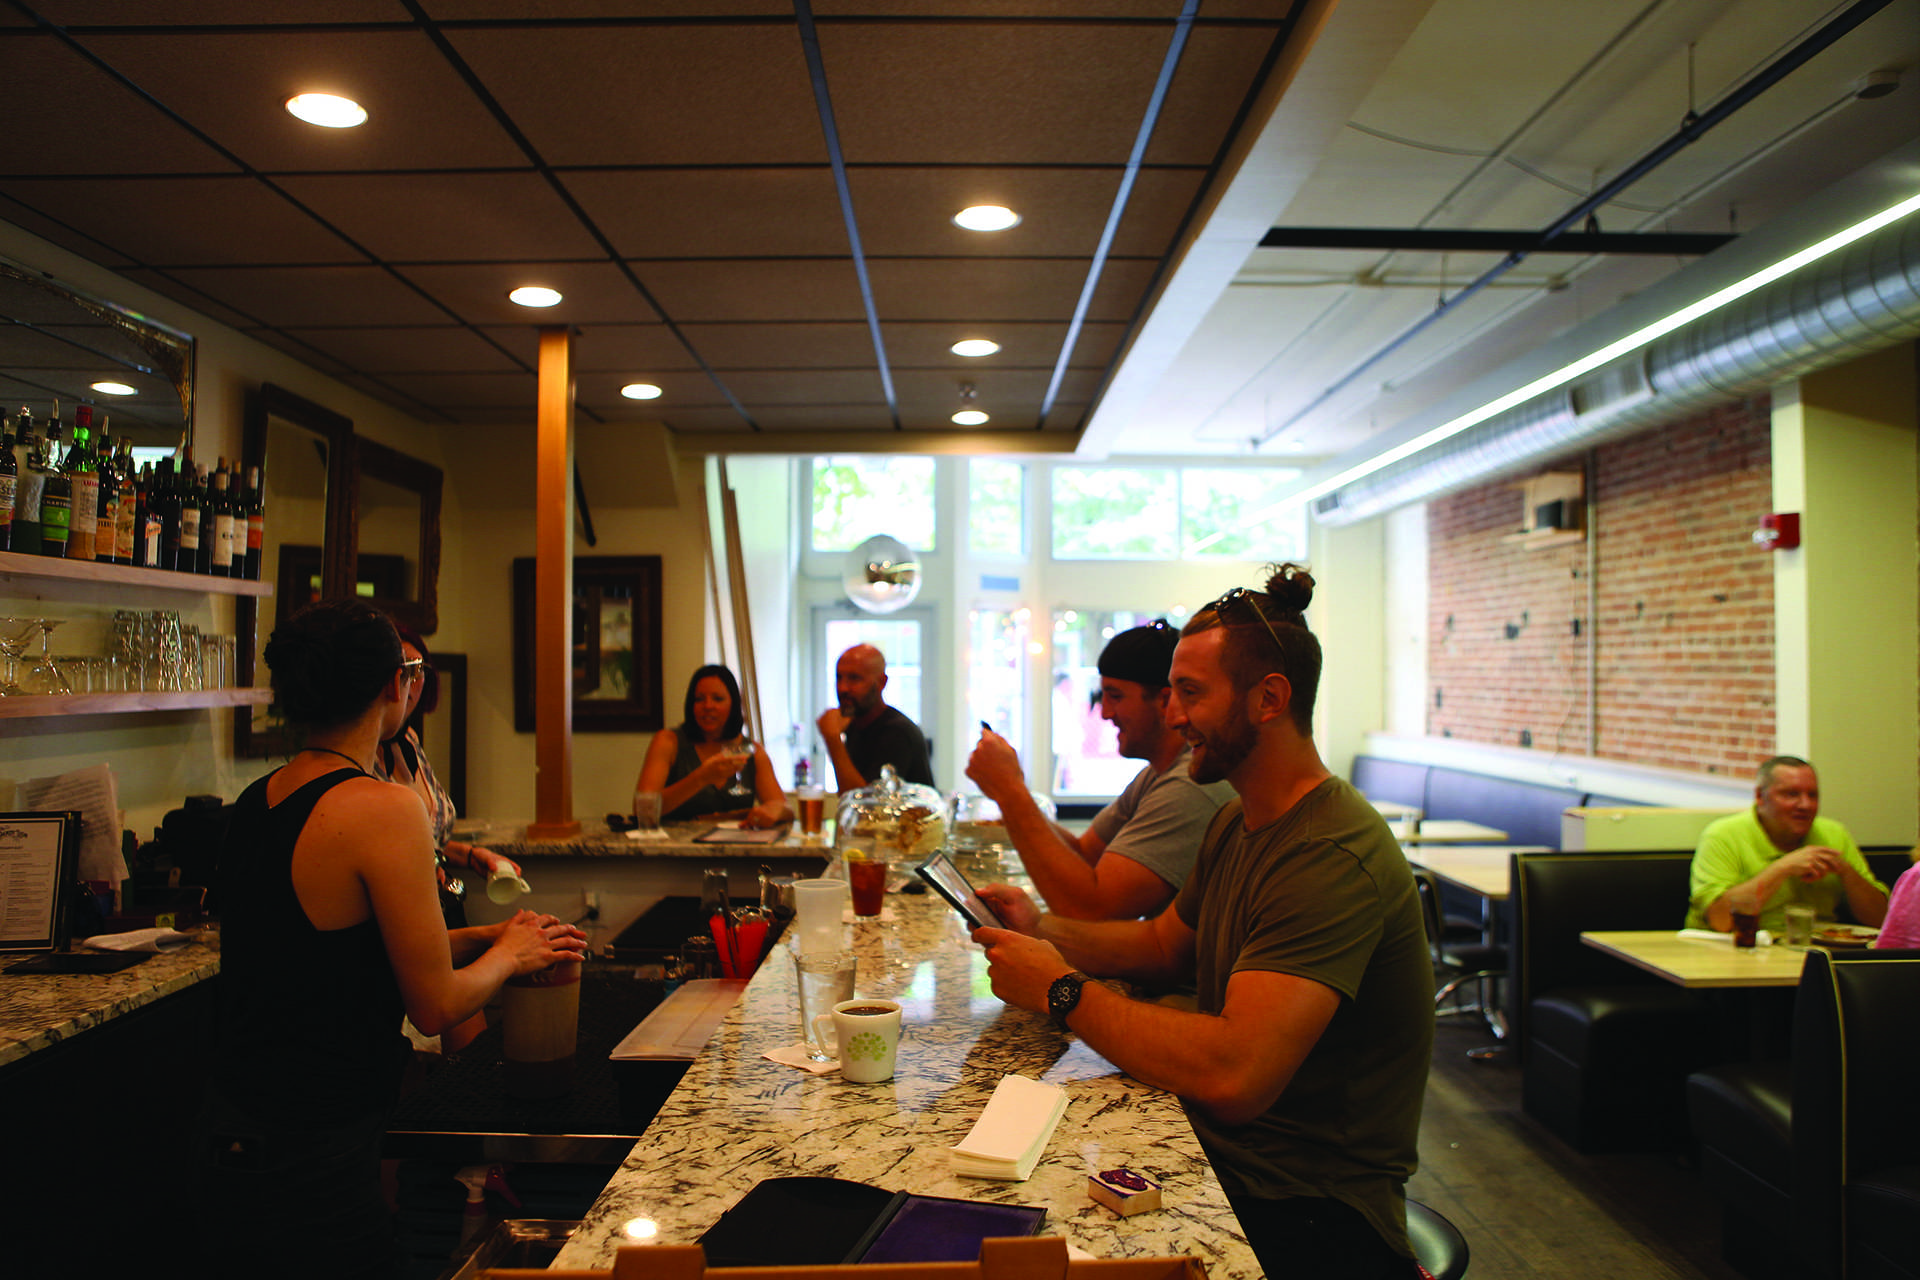 On Sunday, July 1, The Dandy Lion opened its doors to Iowa City. The small bistro is located in the Ped Mall where Forbidden Planet formerly was. (Tate Hildyard/The Daily Iowan).